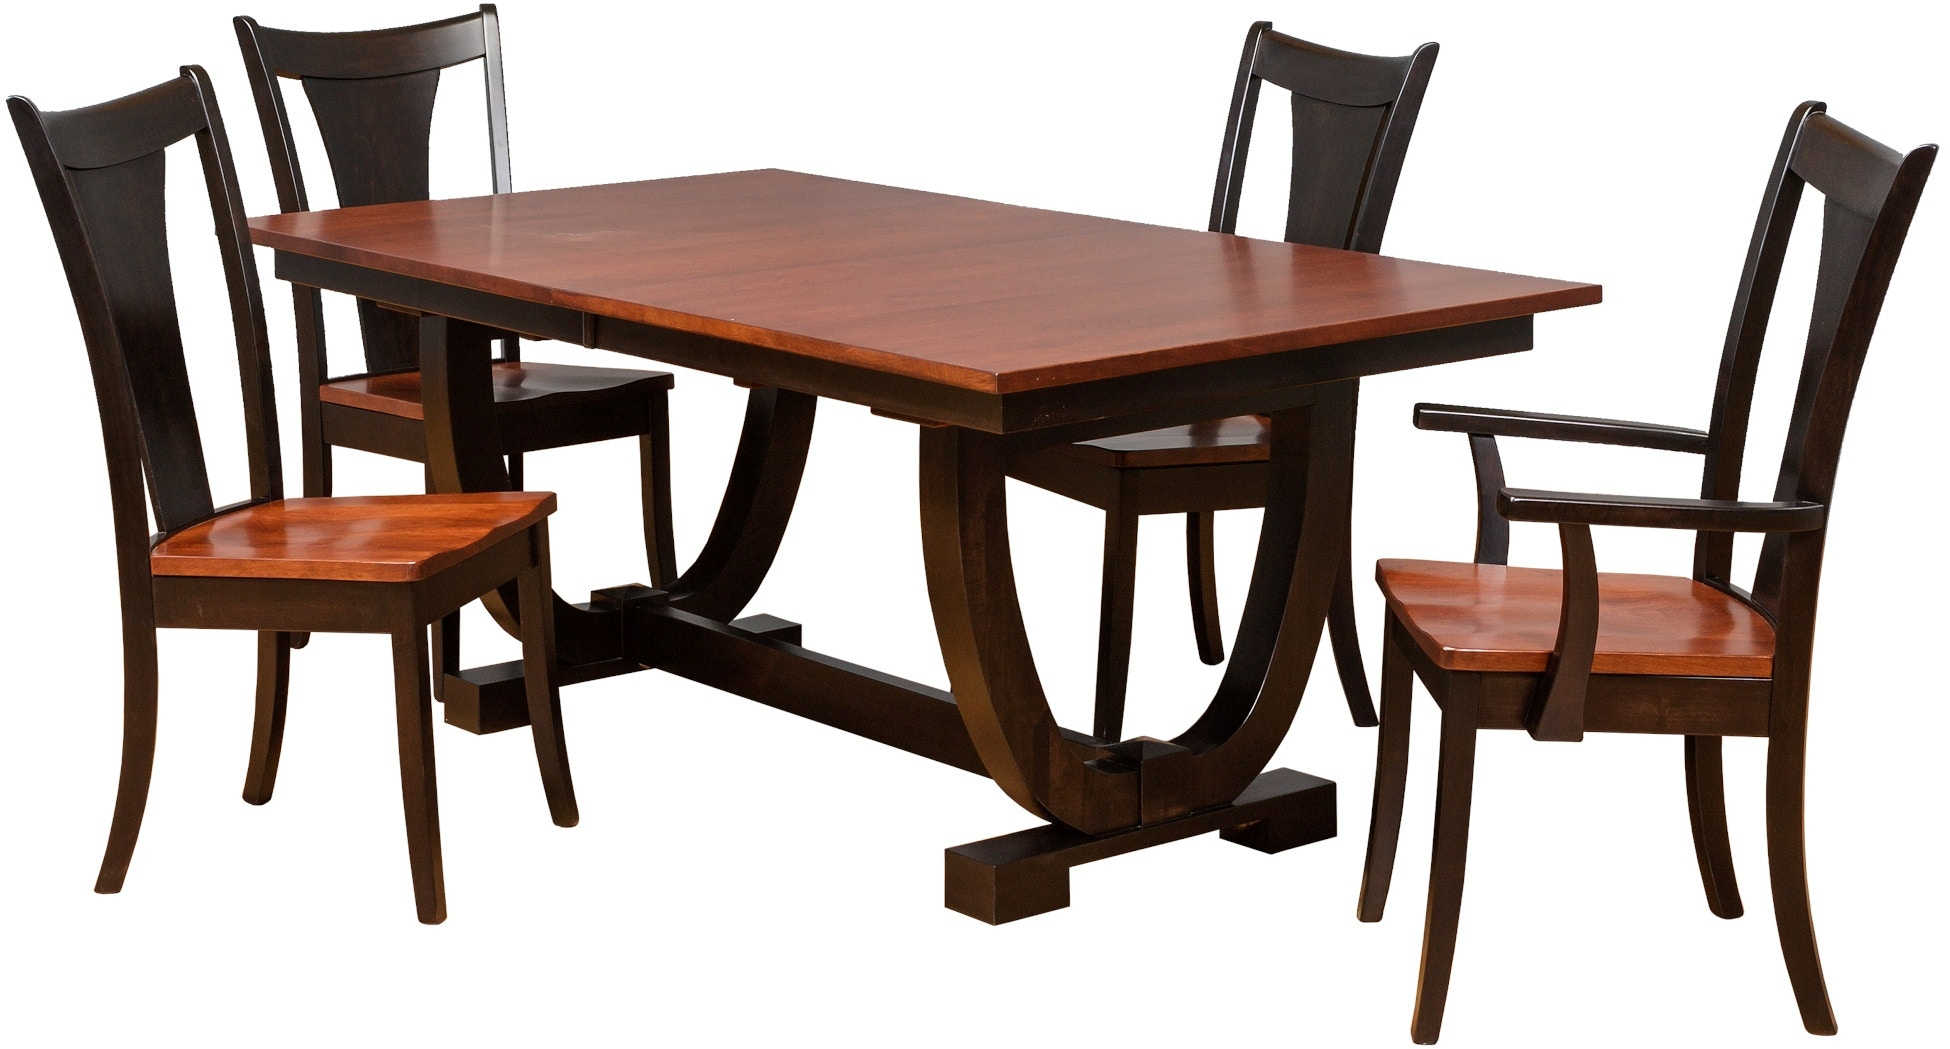 daniel u0027s amish table and 8 chairs 42722 fal9pc gustafson u0027s